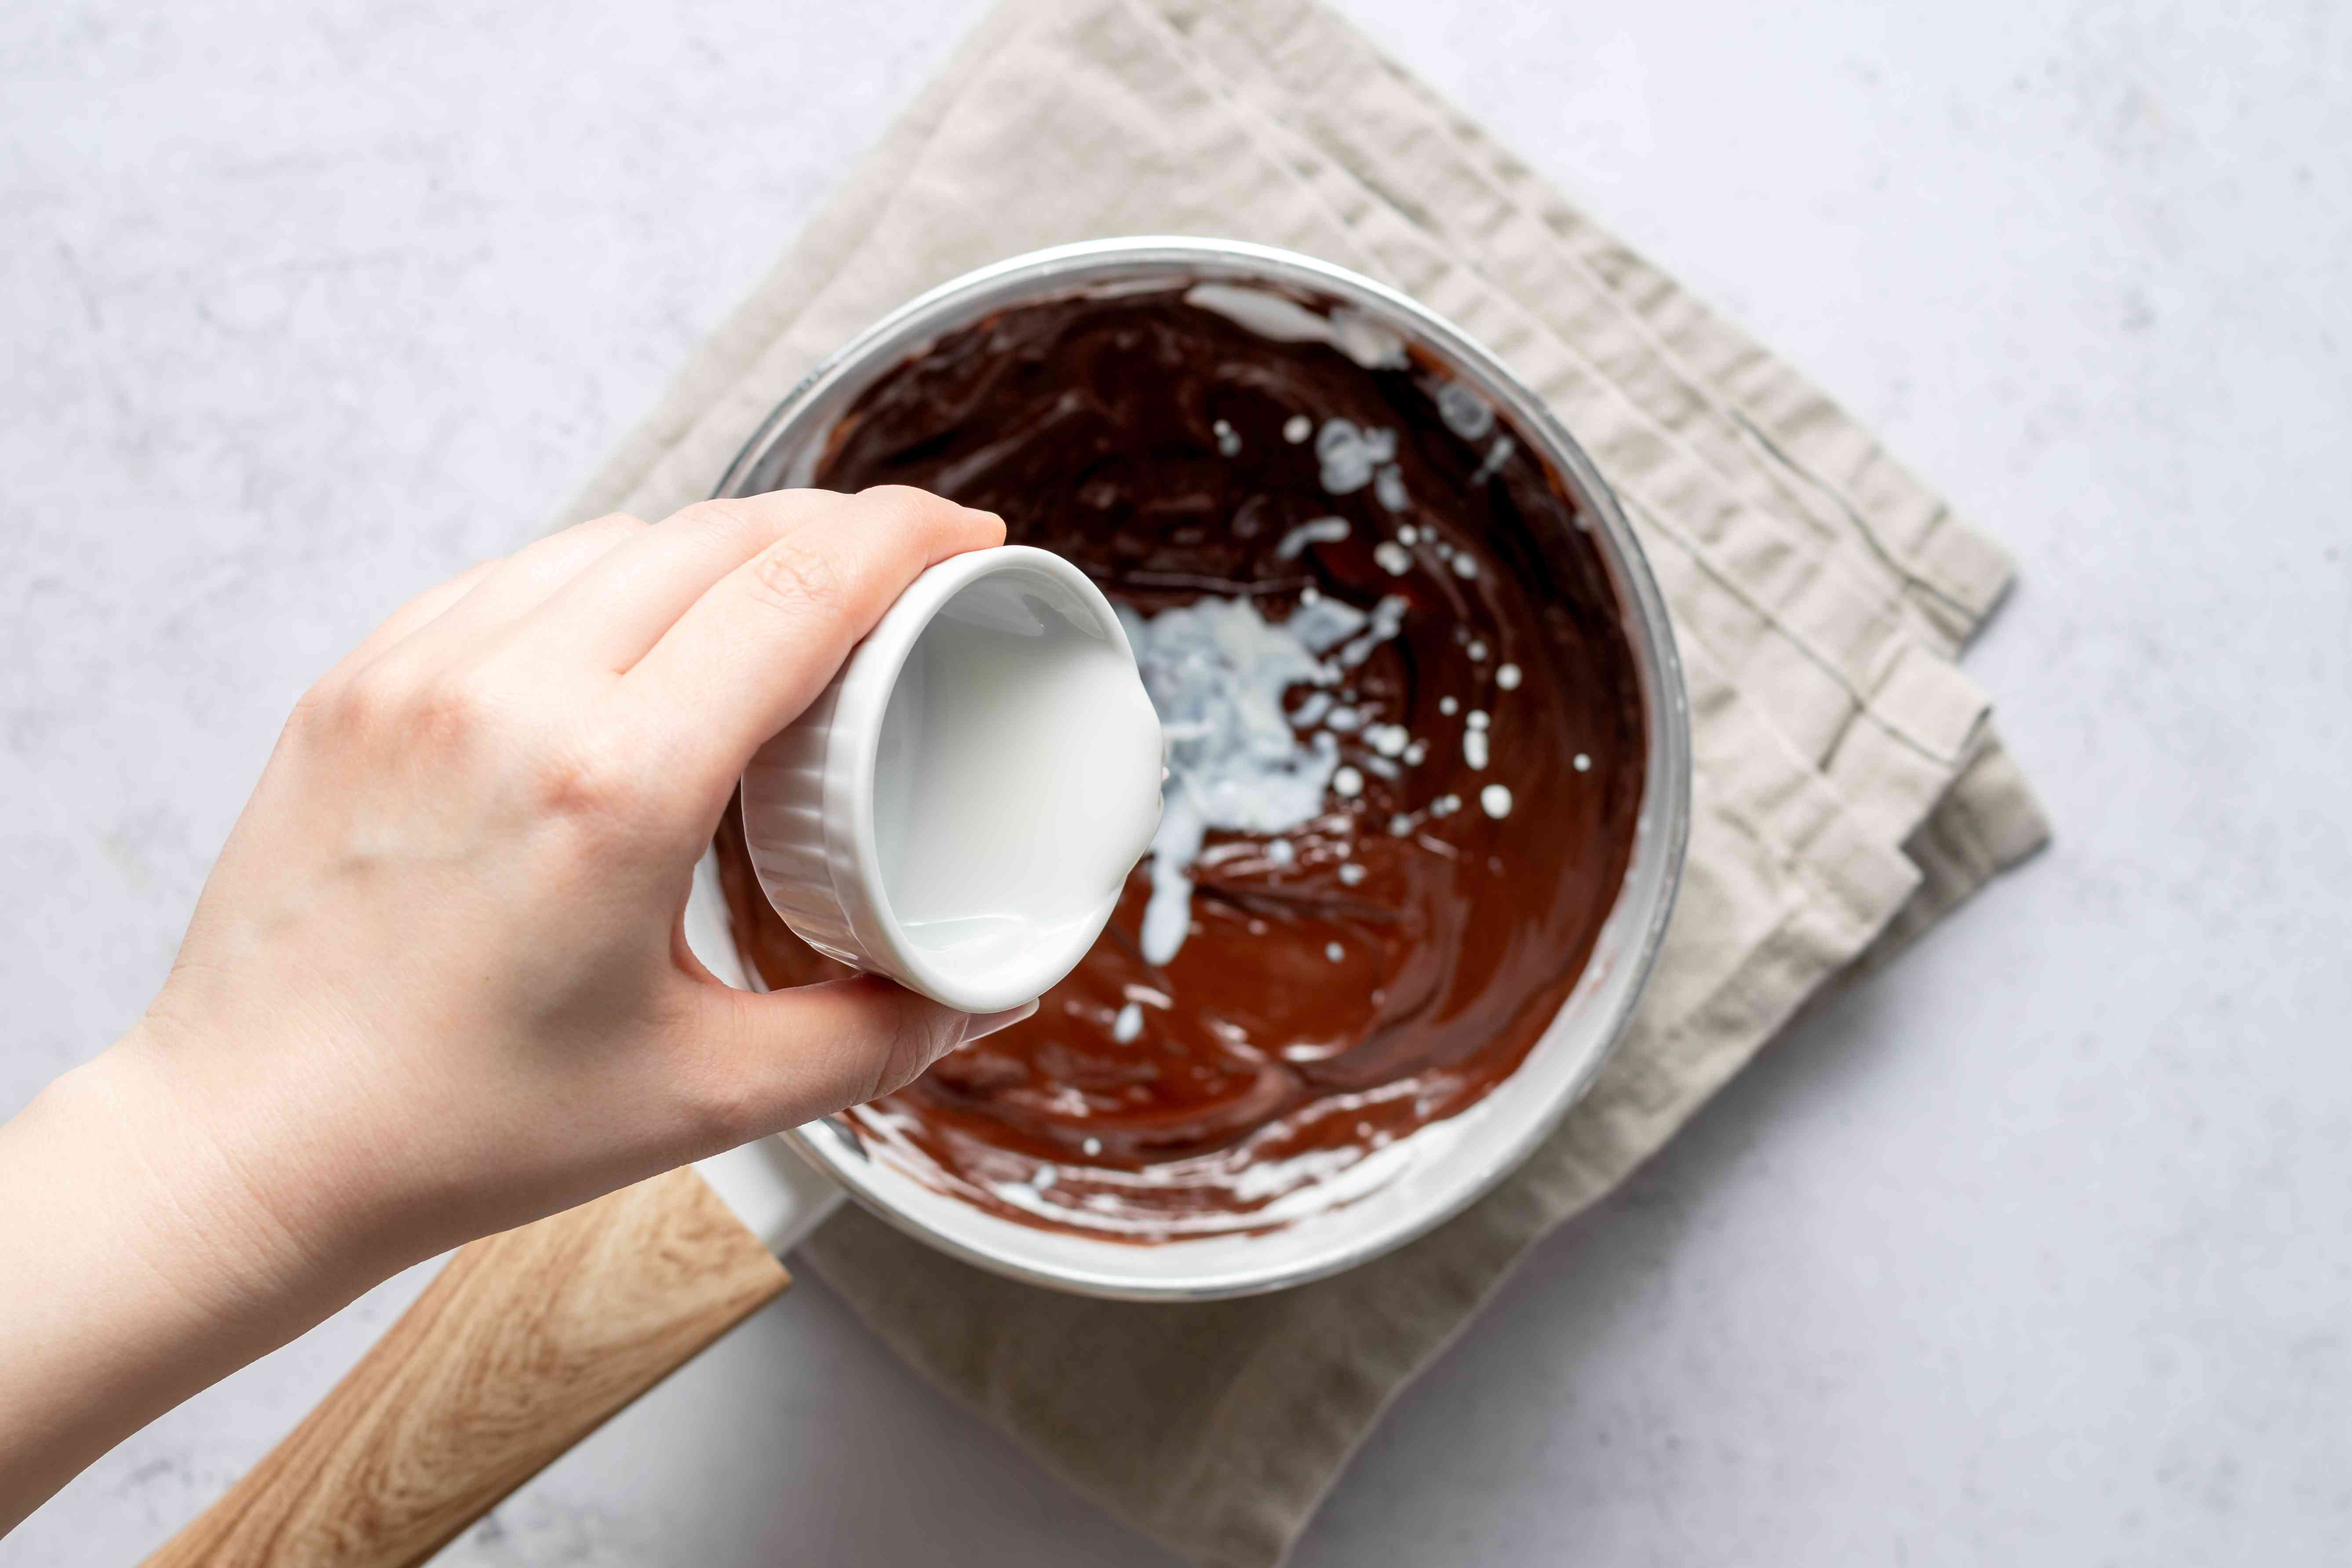 Add milk and agave syrup to the chocolate mixture